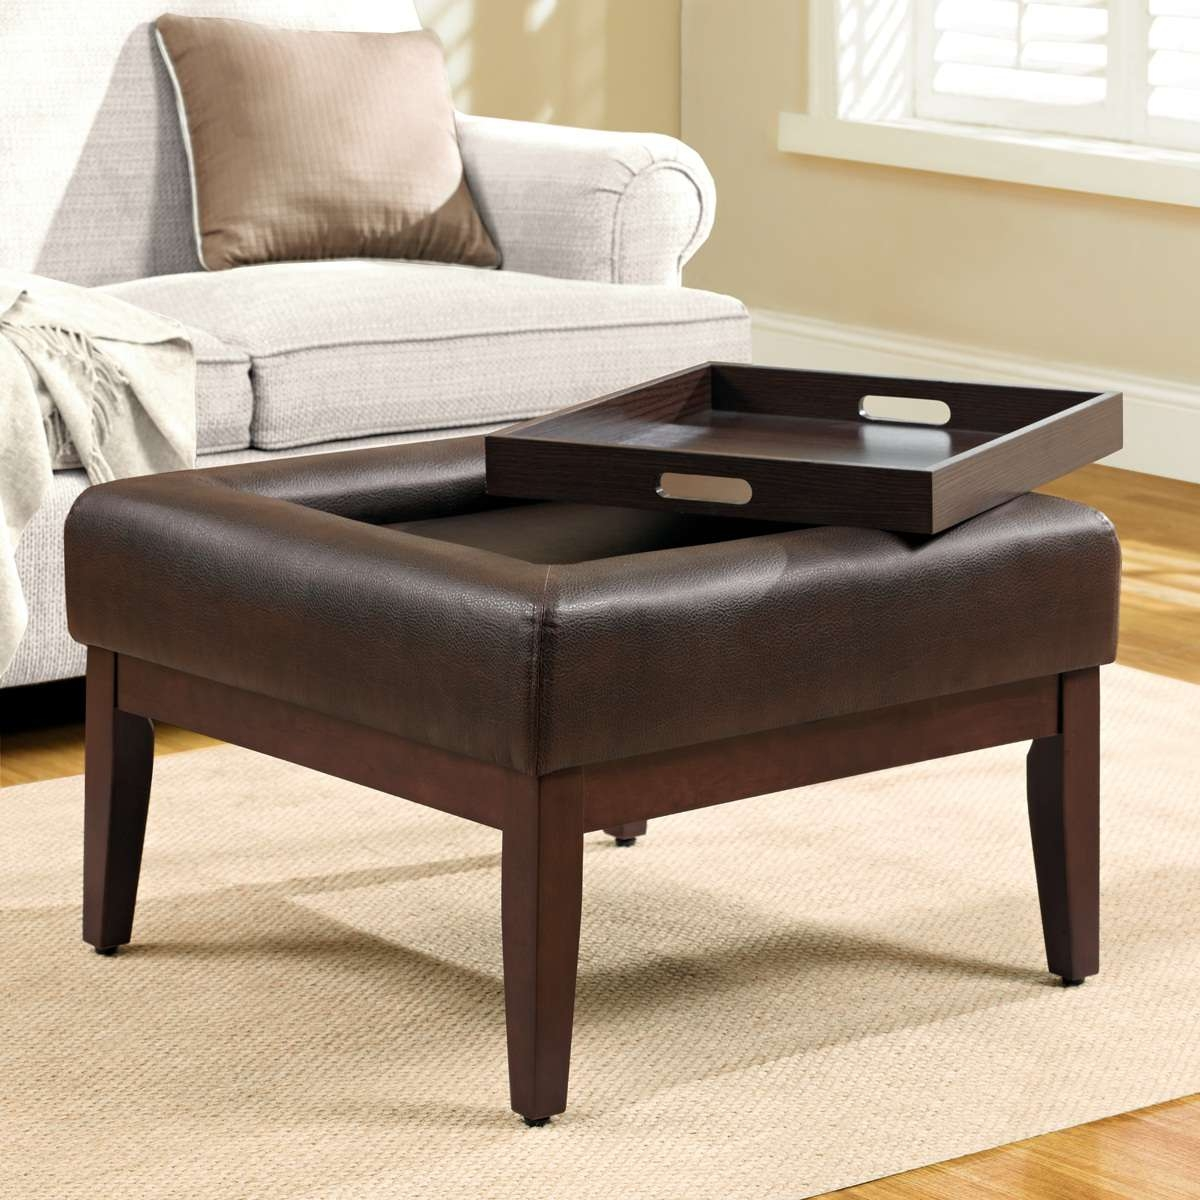 Well Known Brown Leather Ottoman Coffee Tables With Regard To Simple Black Ottoman Coffee Table Designs With Storage – Laredoreads (View 19 of 20)